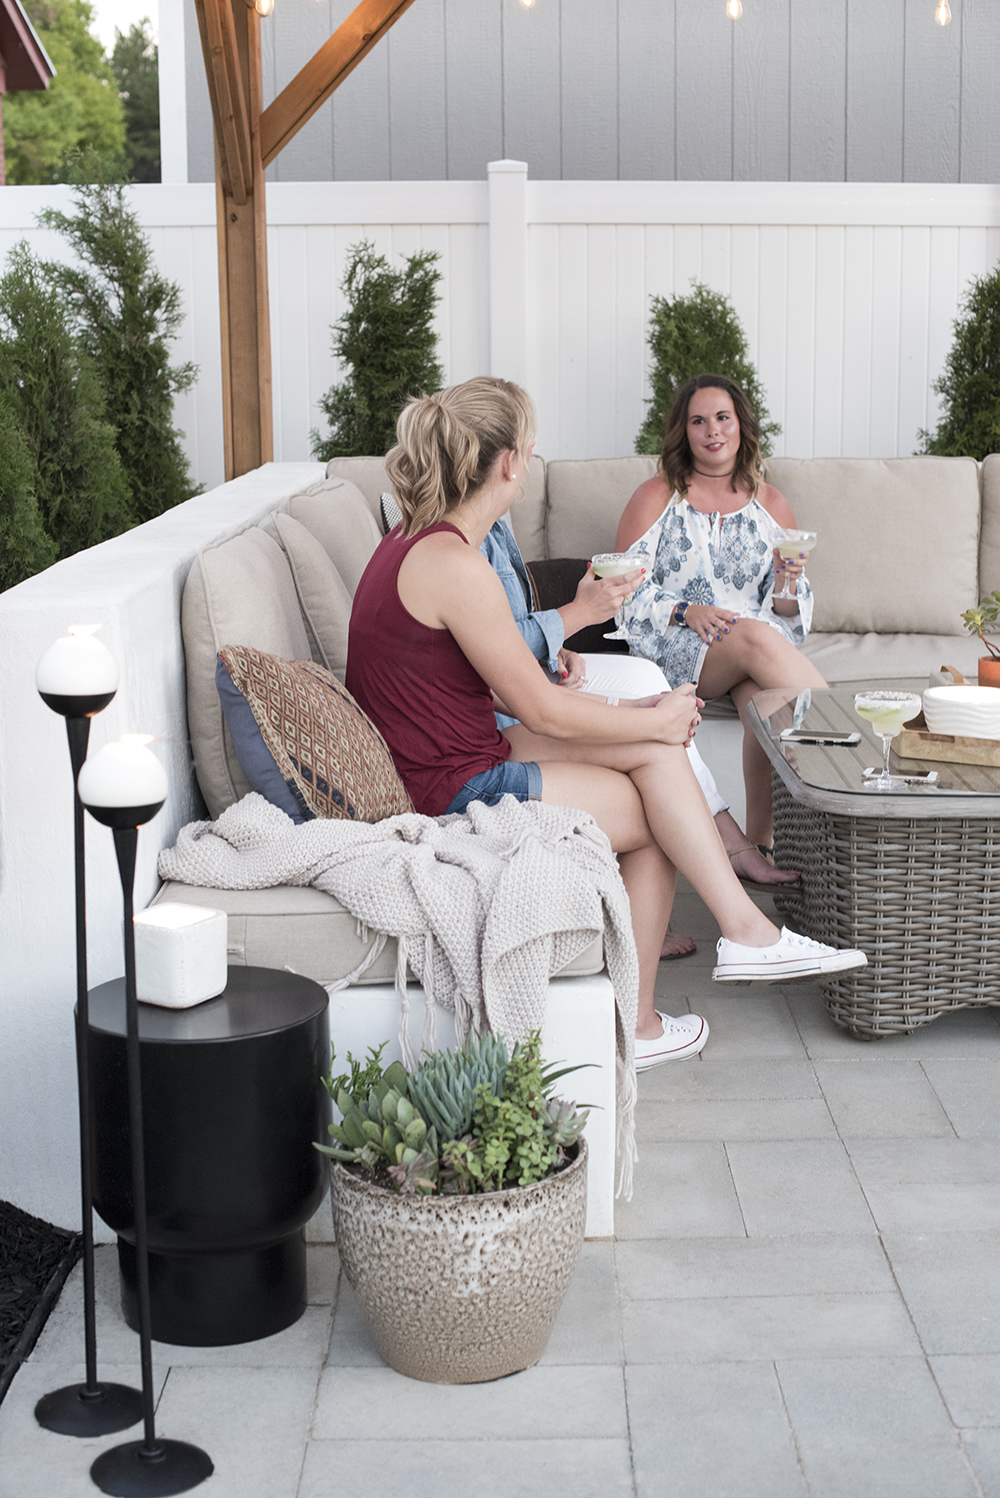 Outdoor Entertaining Essentials for Spring and Summer - roomfortuesday.com